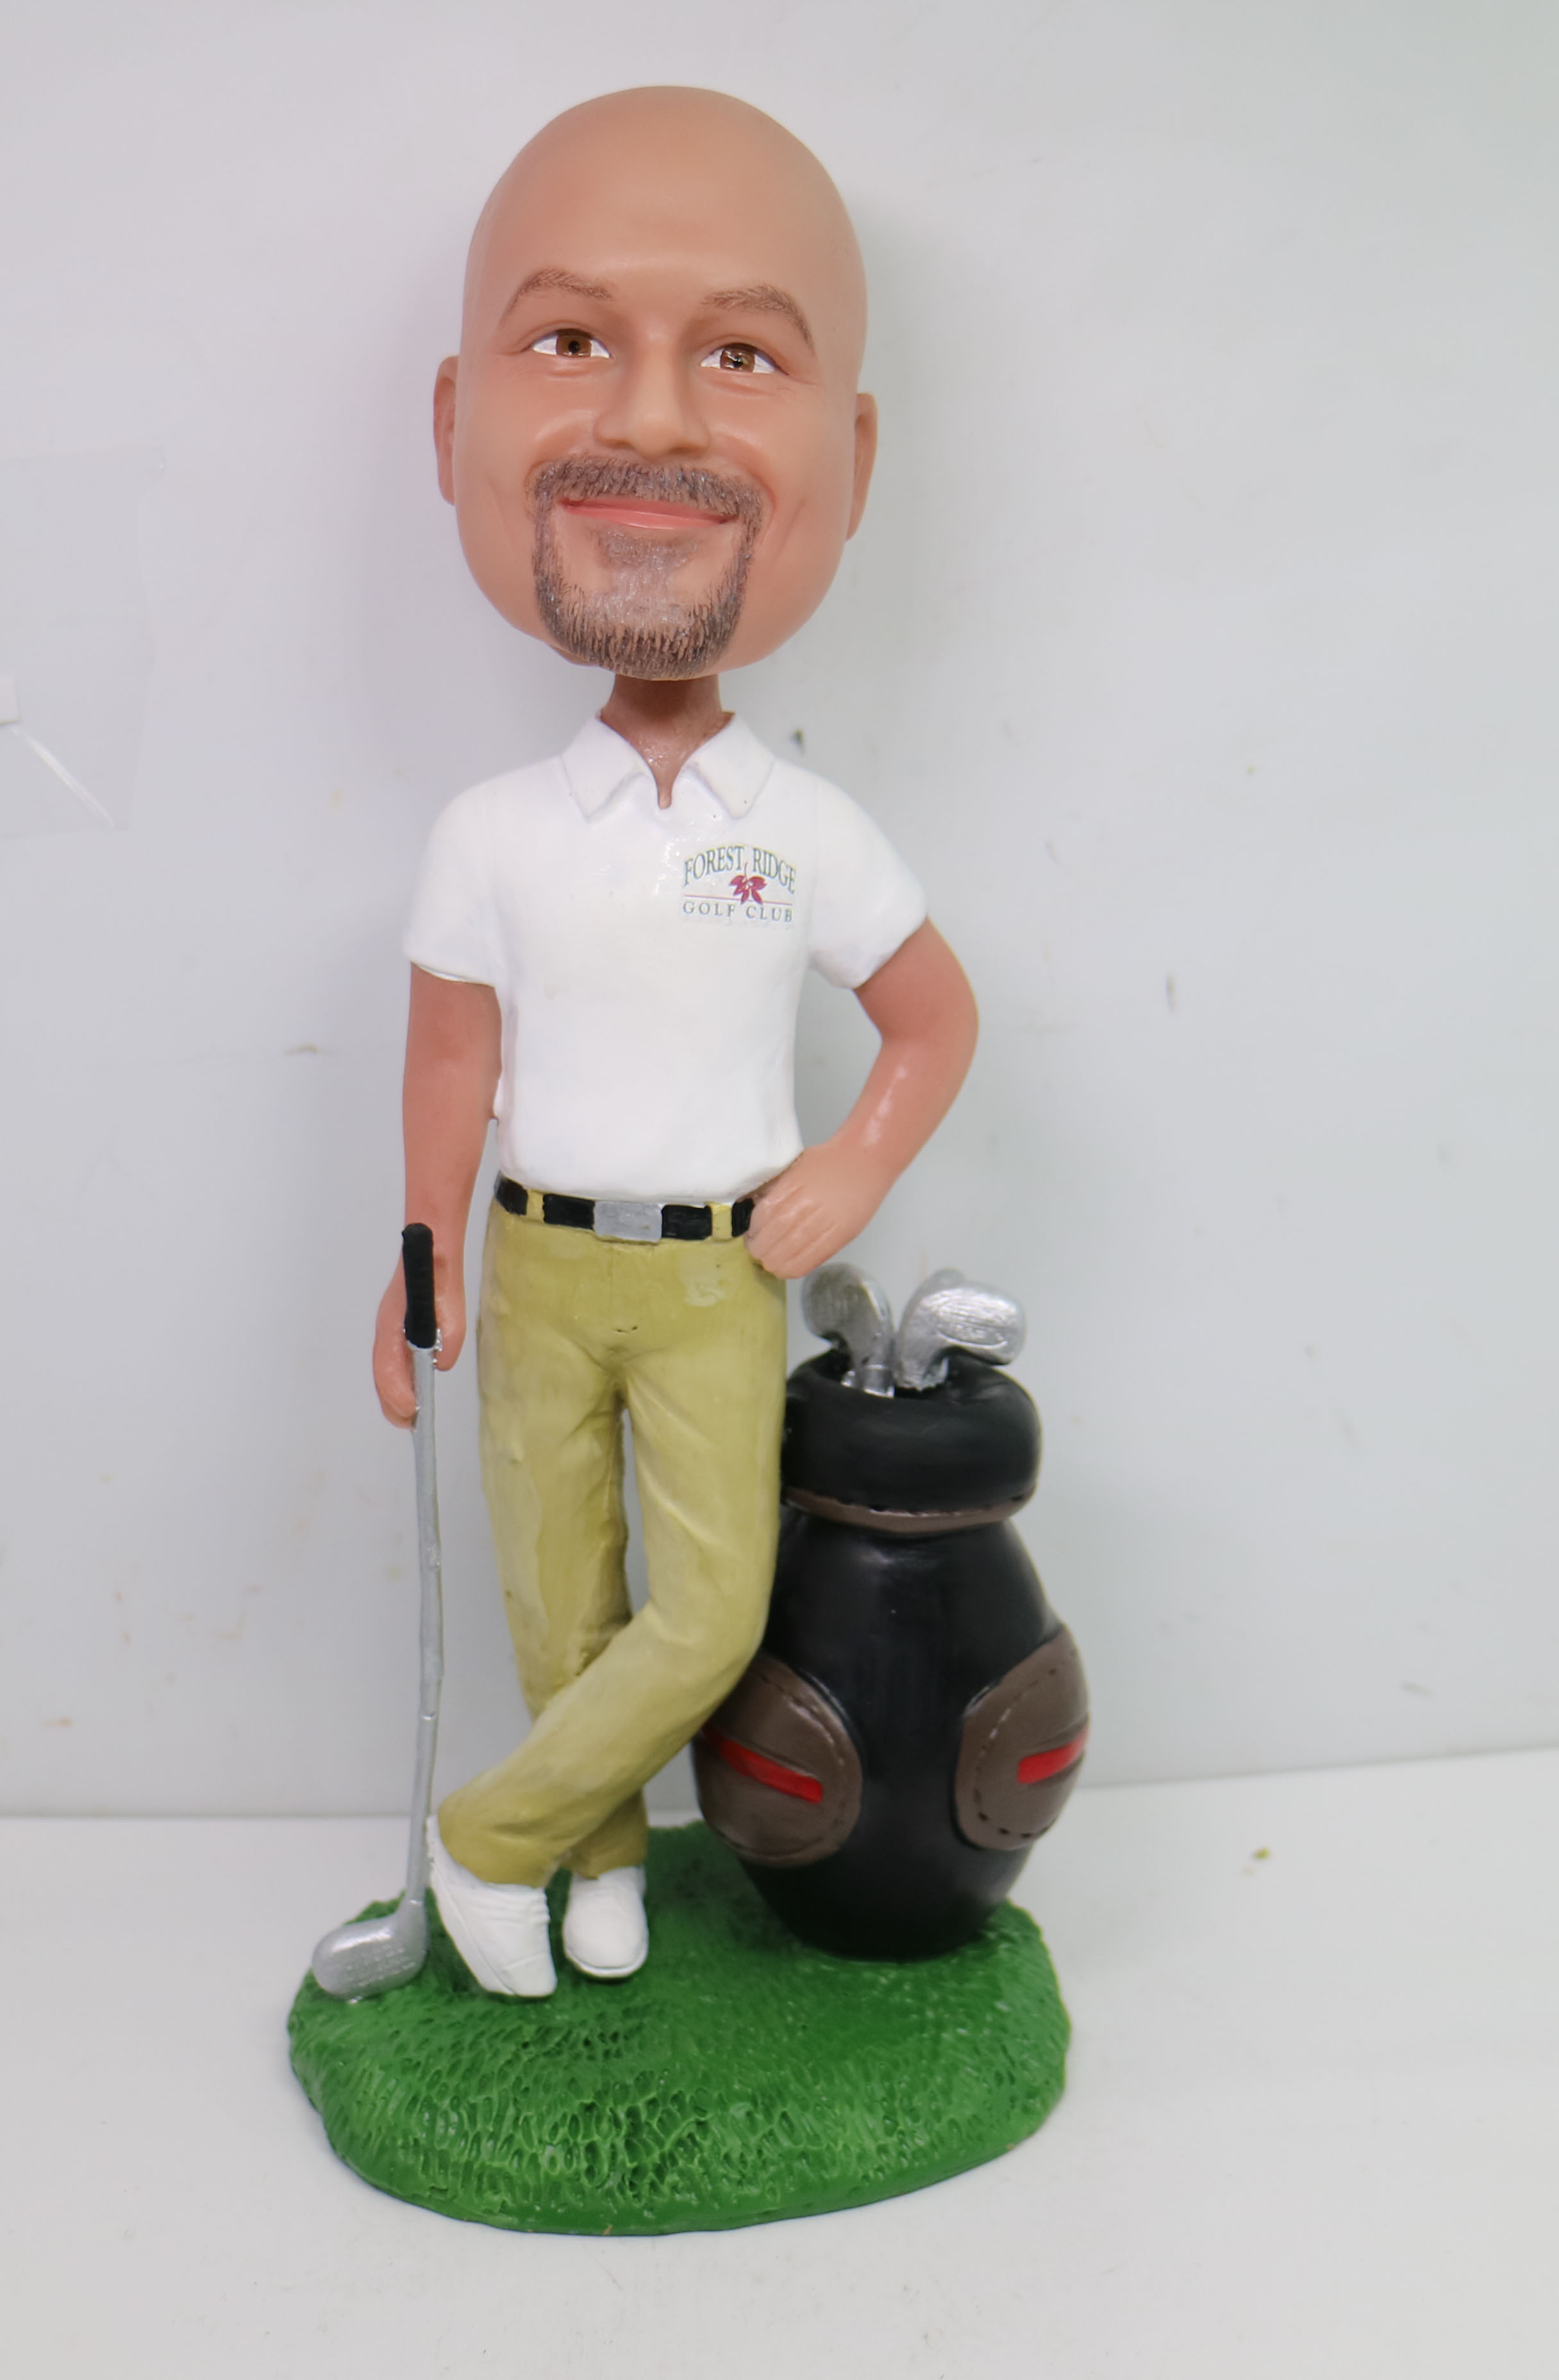 There's a latest Christmas gift idea this year on the Internet that is creating a stir. It is customized bobblehead dolls.